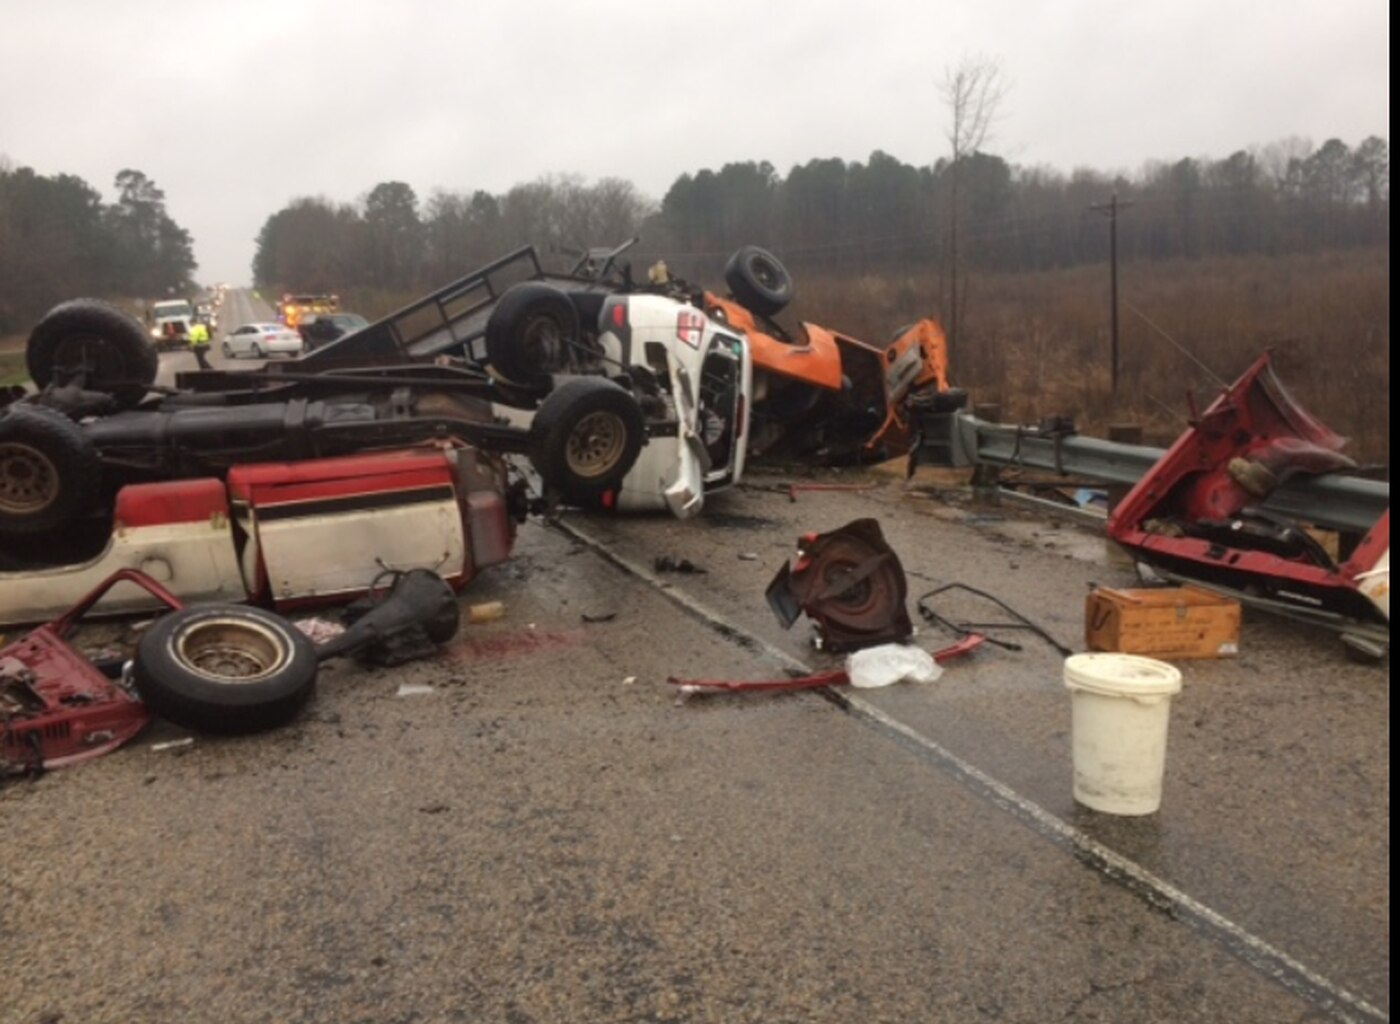 U S  67 collision sends 4 people to hospital, impacts travel